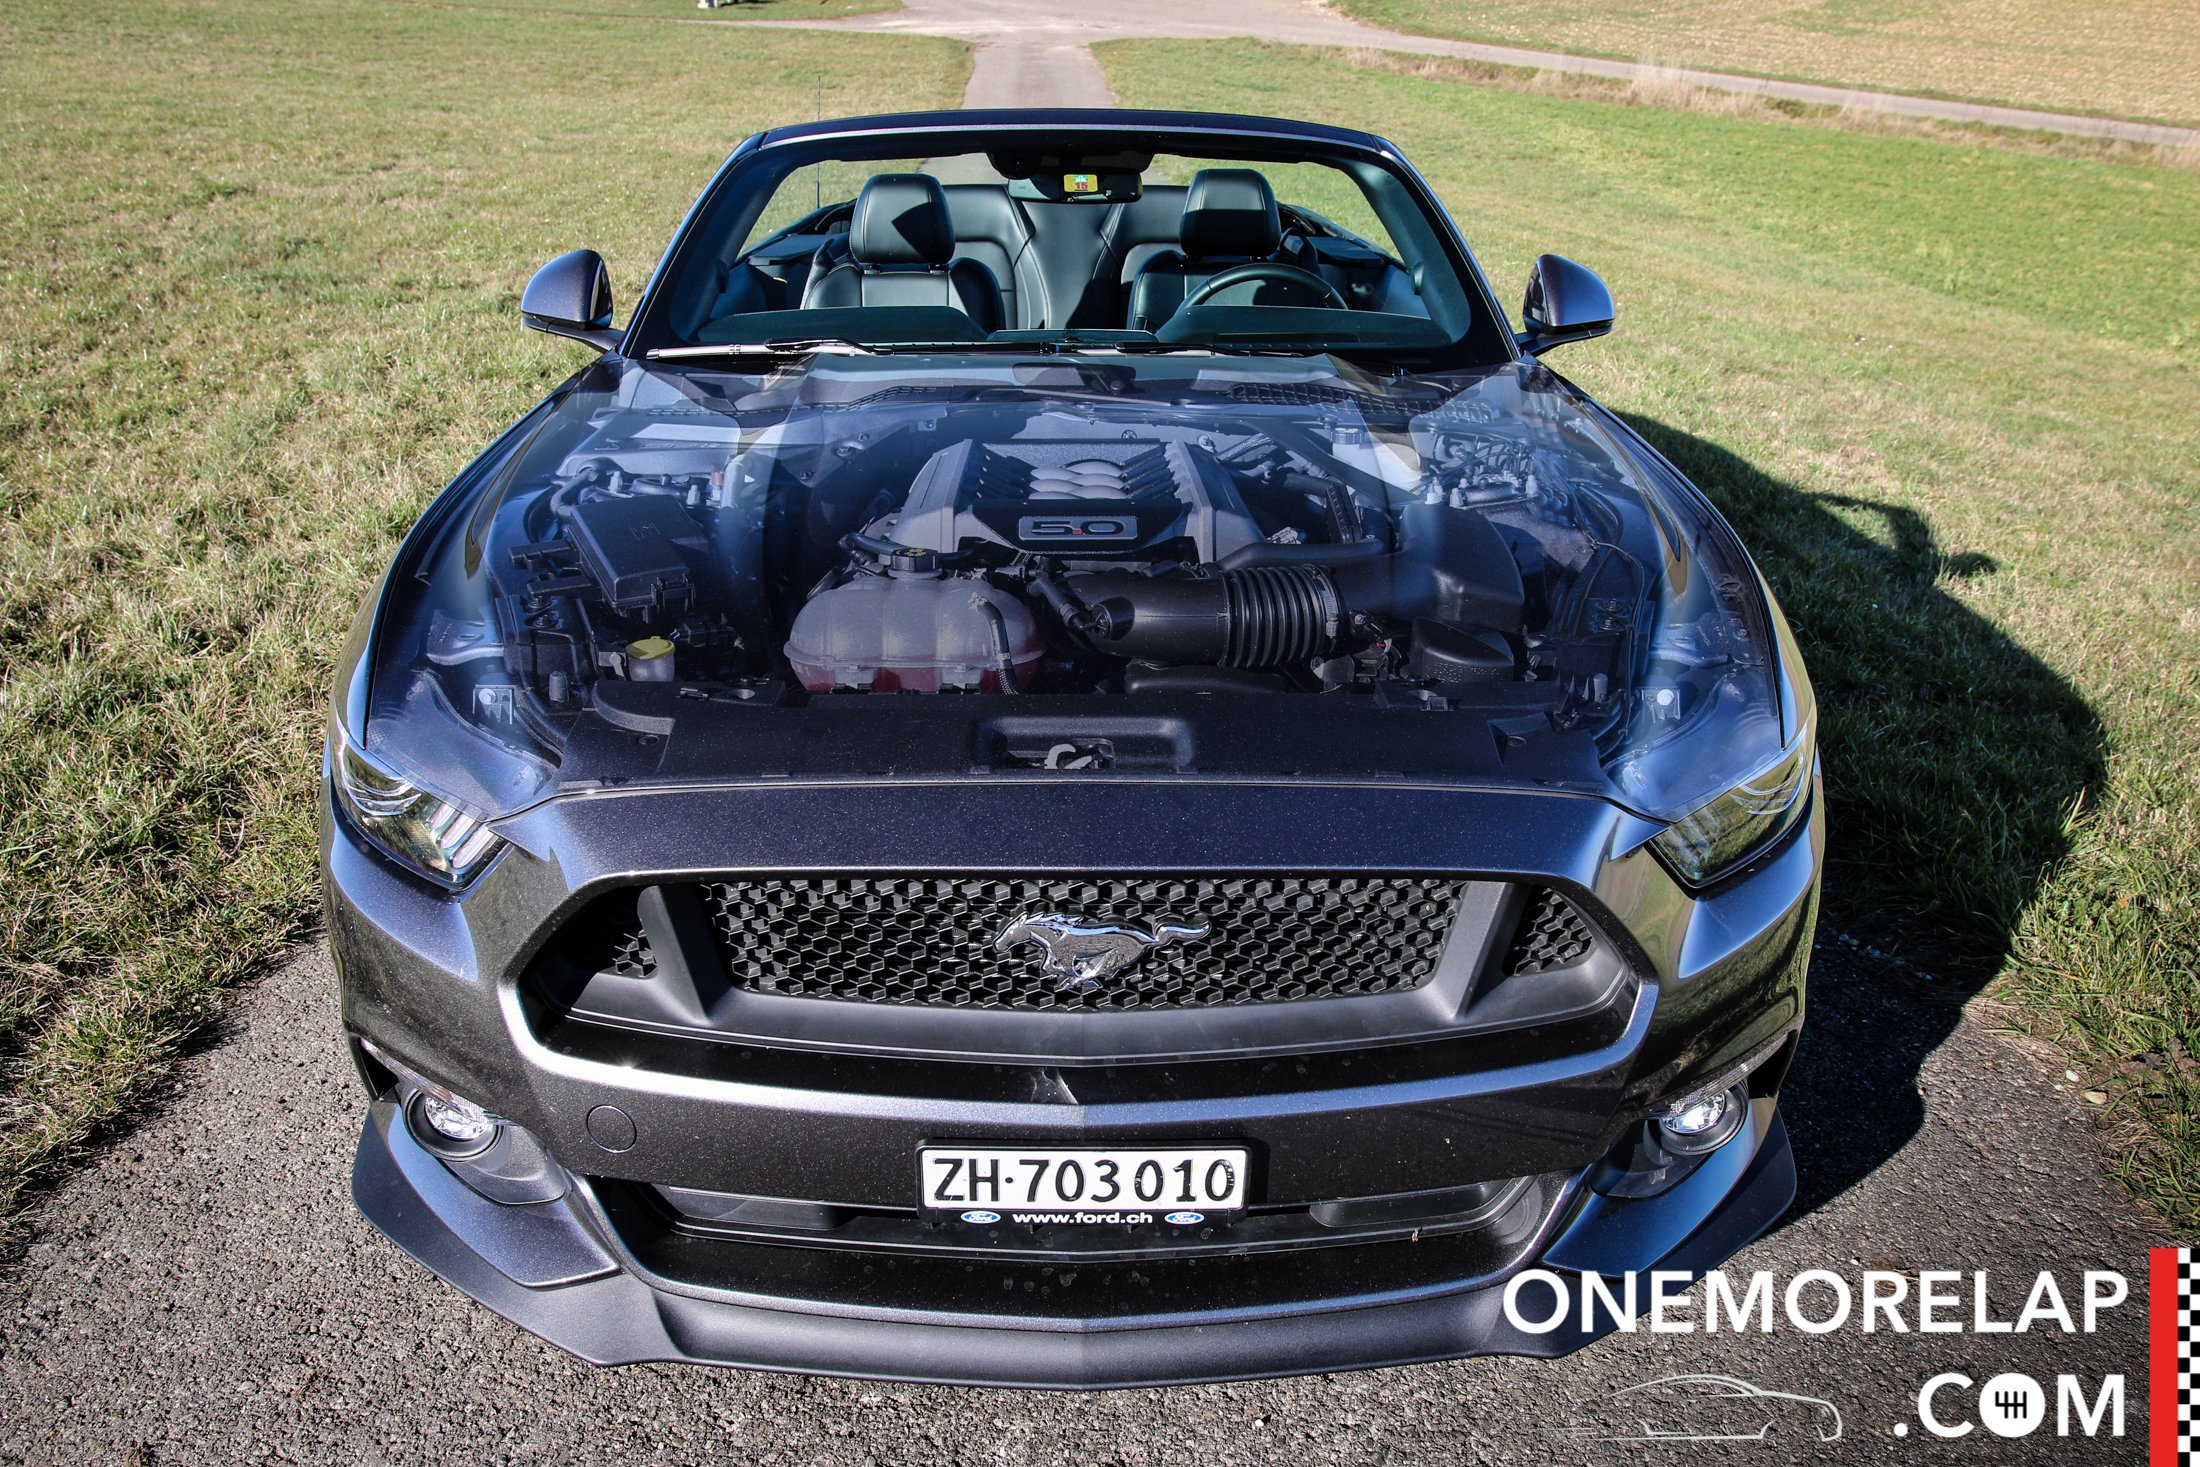 fahrbericht ford mustang gt cabrio 2015 by. Black Bedroom Furniture Sets. Home Design Ideas